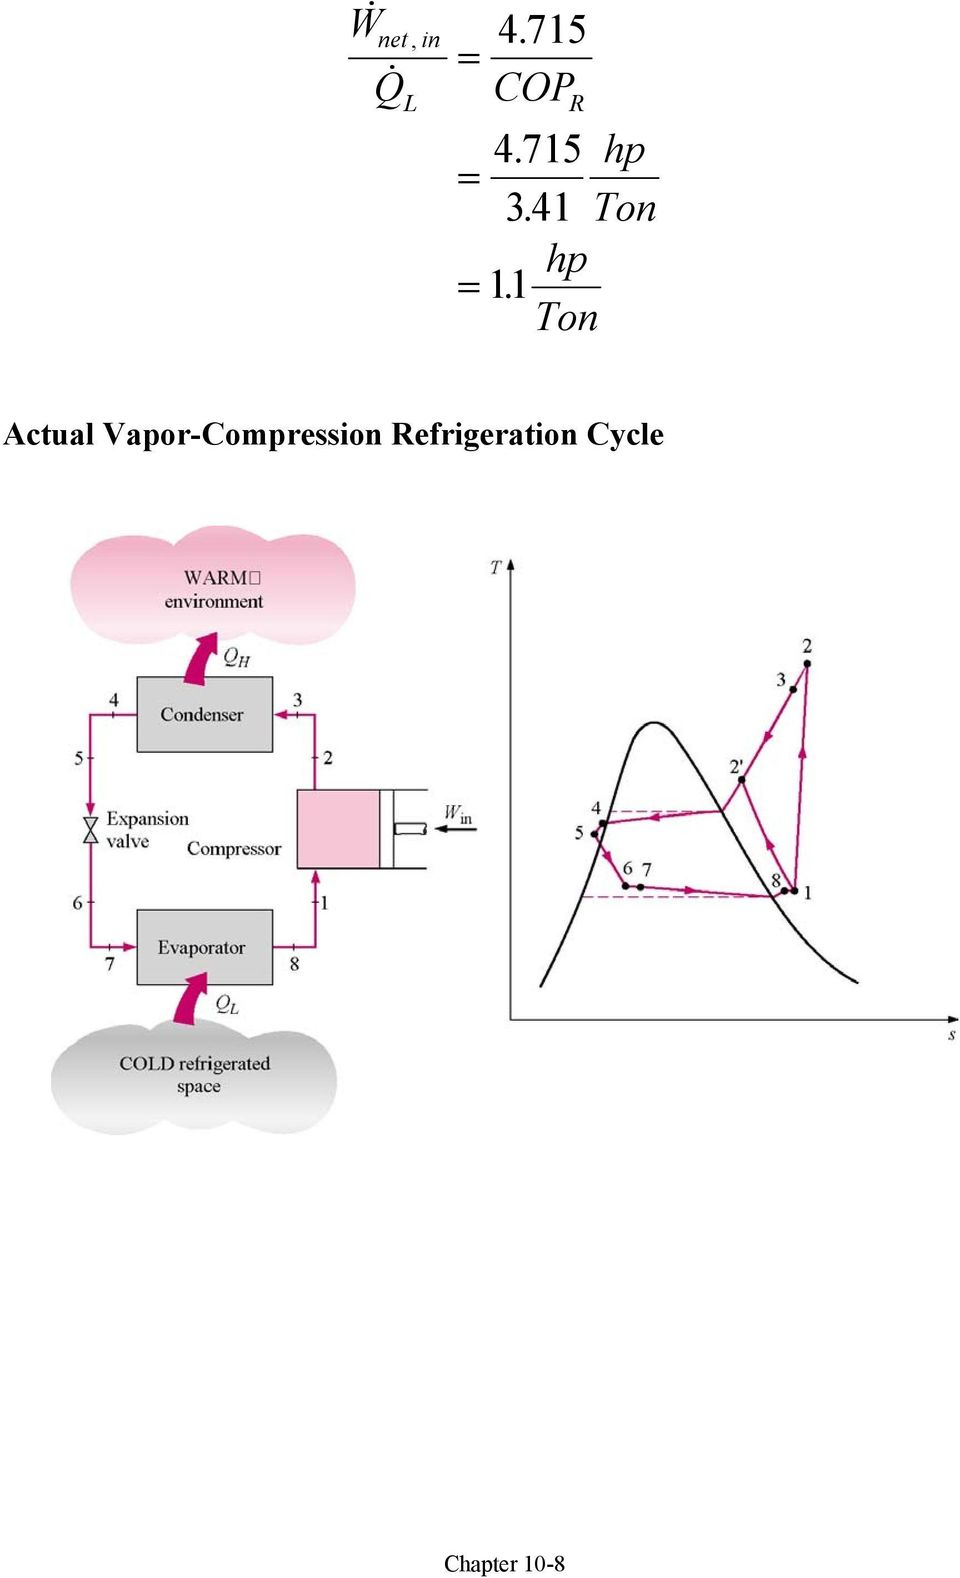 Chapter 10: Refrigeration Cycles - PDF